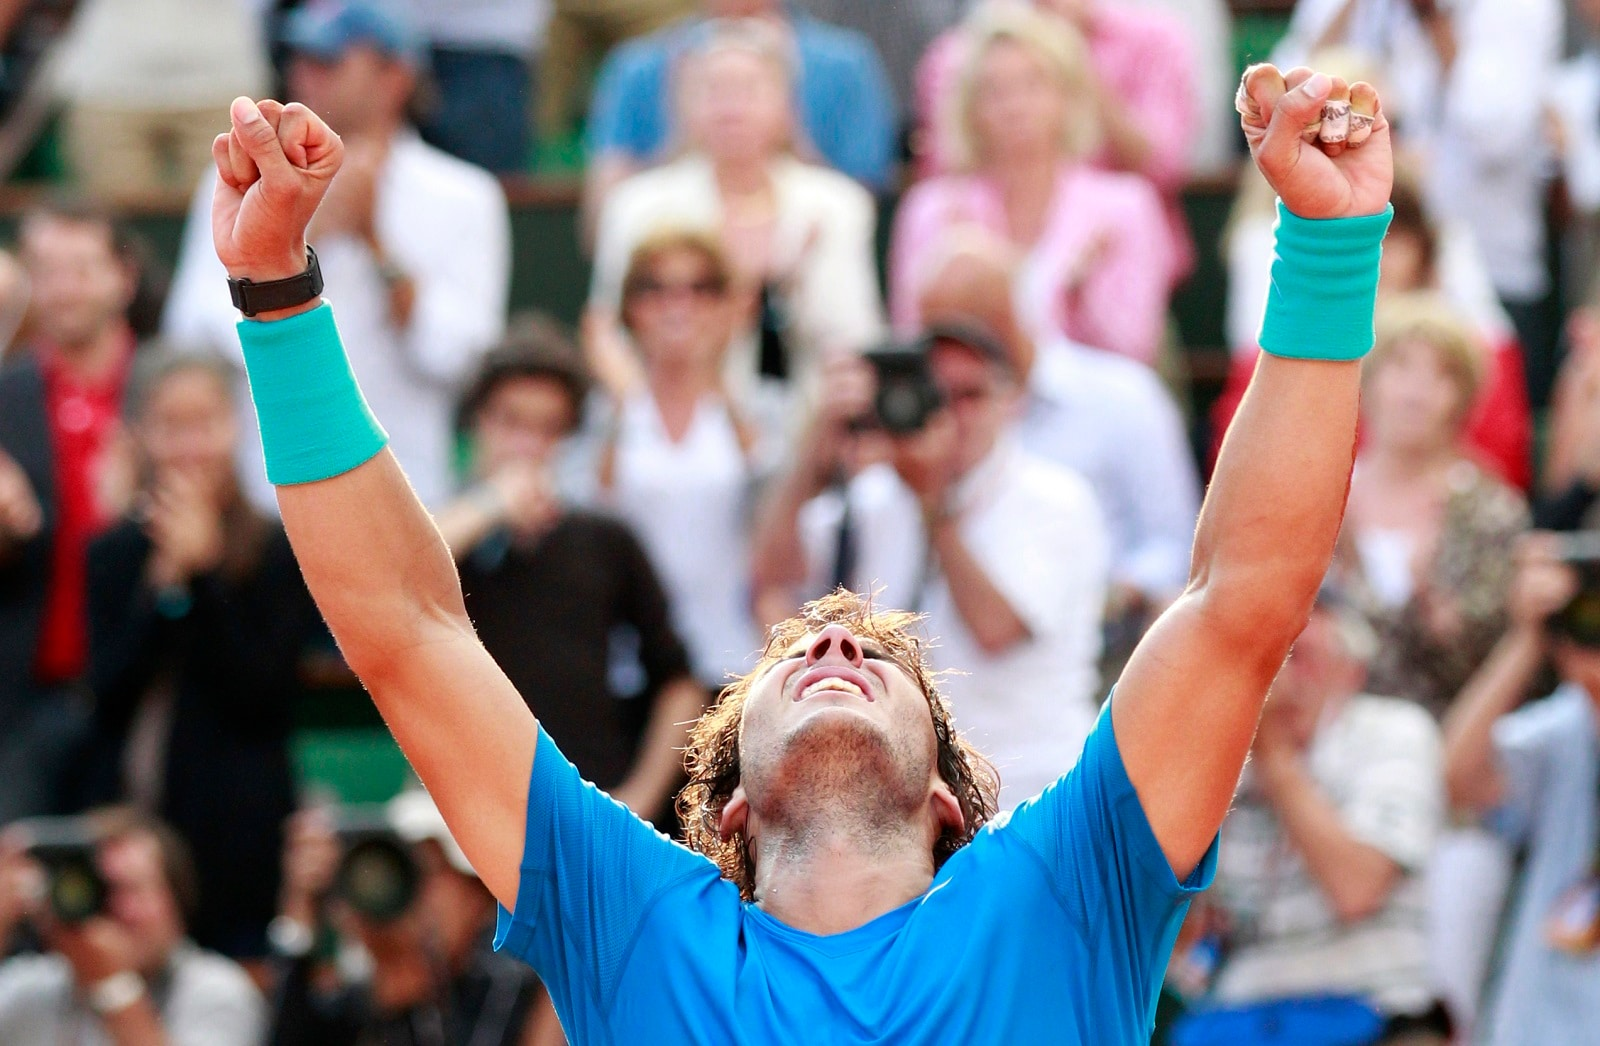 Rafael Nadal of Spain celebrates after defeating Roger Federer of Switzerland during their men's final at the French Open tennis tournament at the Roland Garros stadium in Paris June 5, 2011. REUTERS/Vincent Kessler